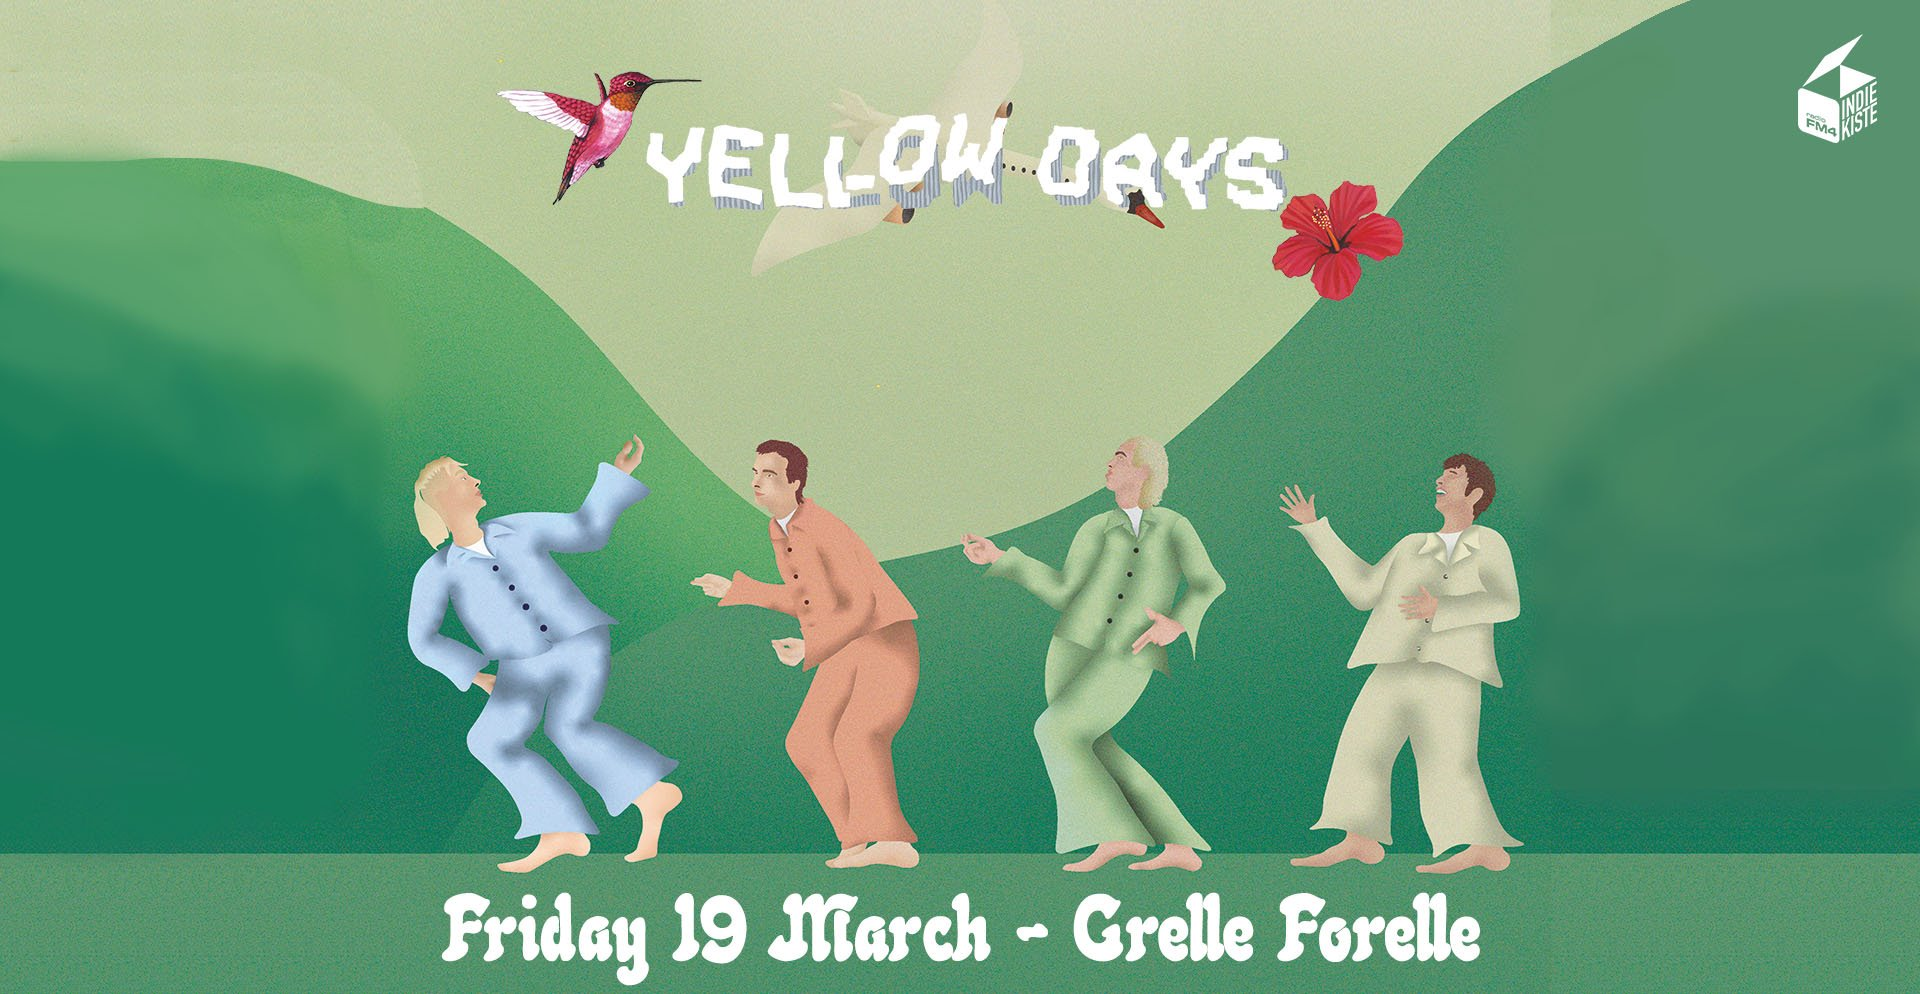 Yellow Days am 19. March 2021 @ Grelle Forelle.